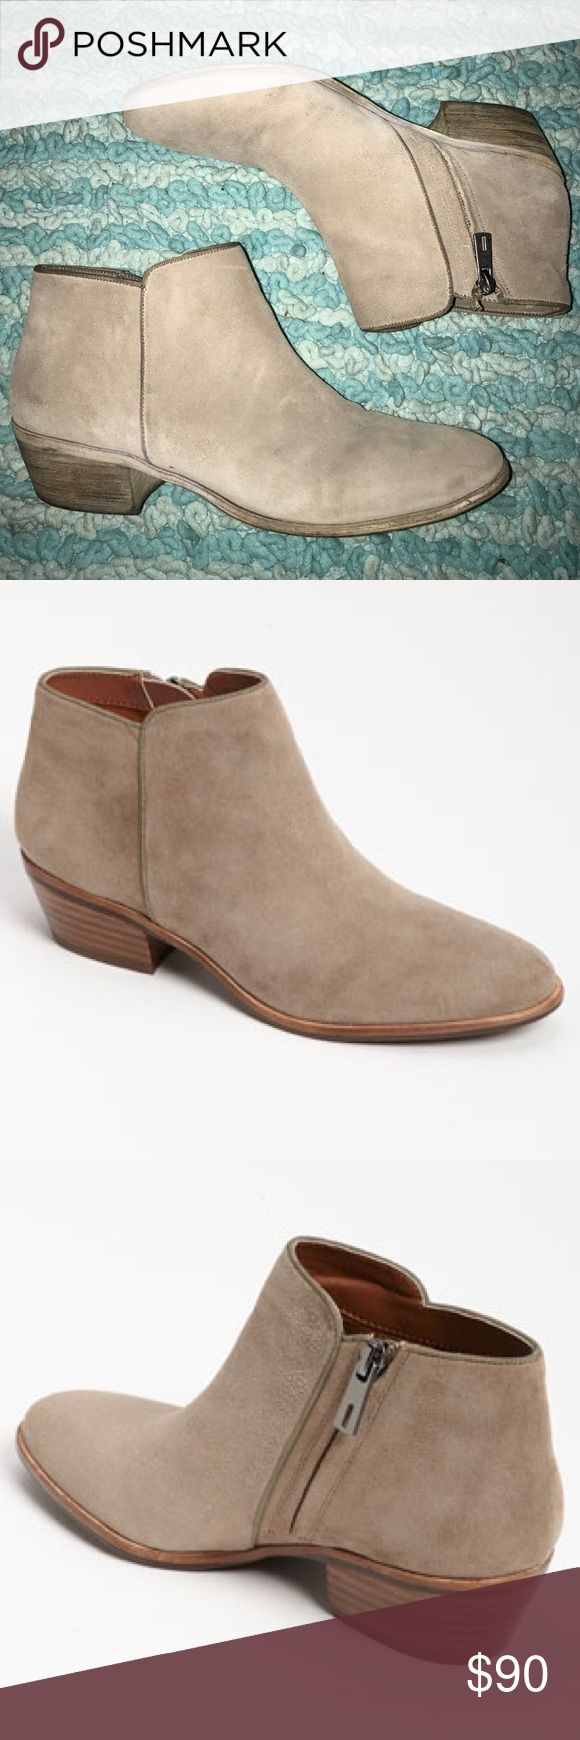 """Sam Edelman """"Petty"""" Chelsea Boot Leather Sam Edelman Chelsea boots. Texture is suede, color is a nude/taupe. In very good condition, just not my style. Super cute with a romper for summer. Sam Edelman Shoes Ankle Boots & Booties"""